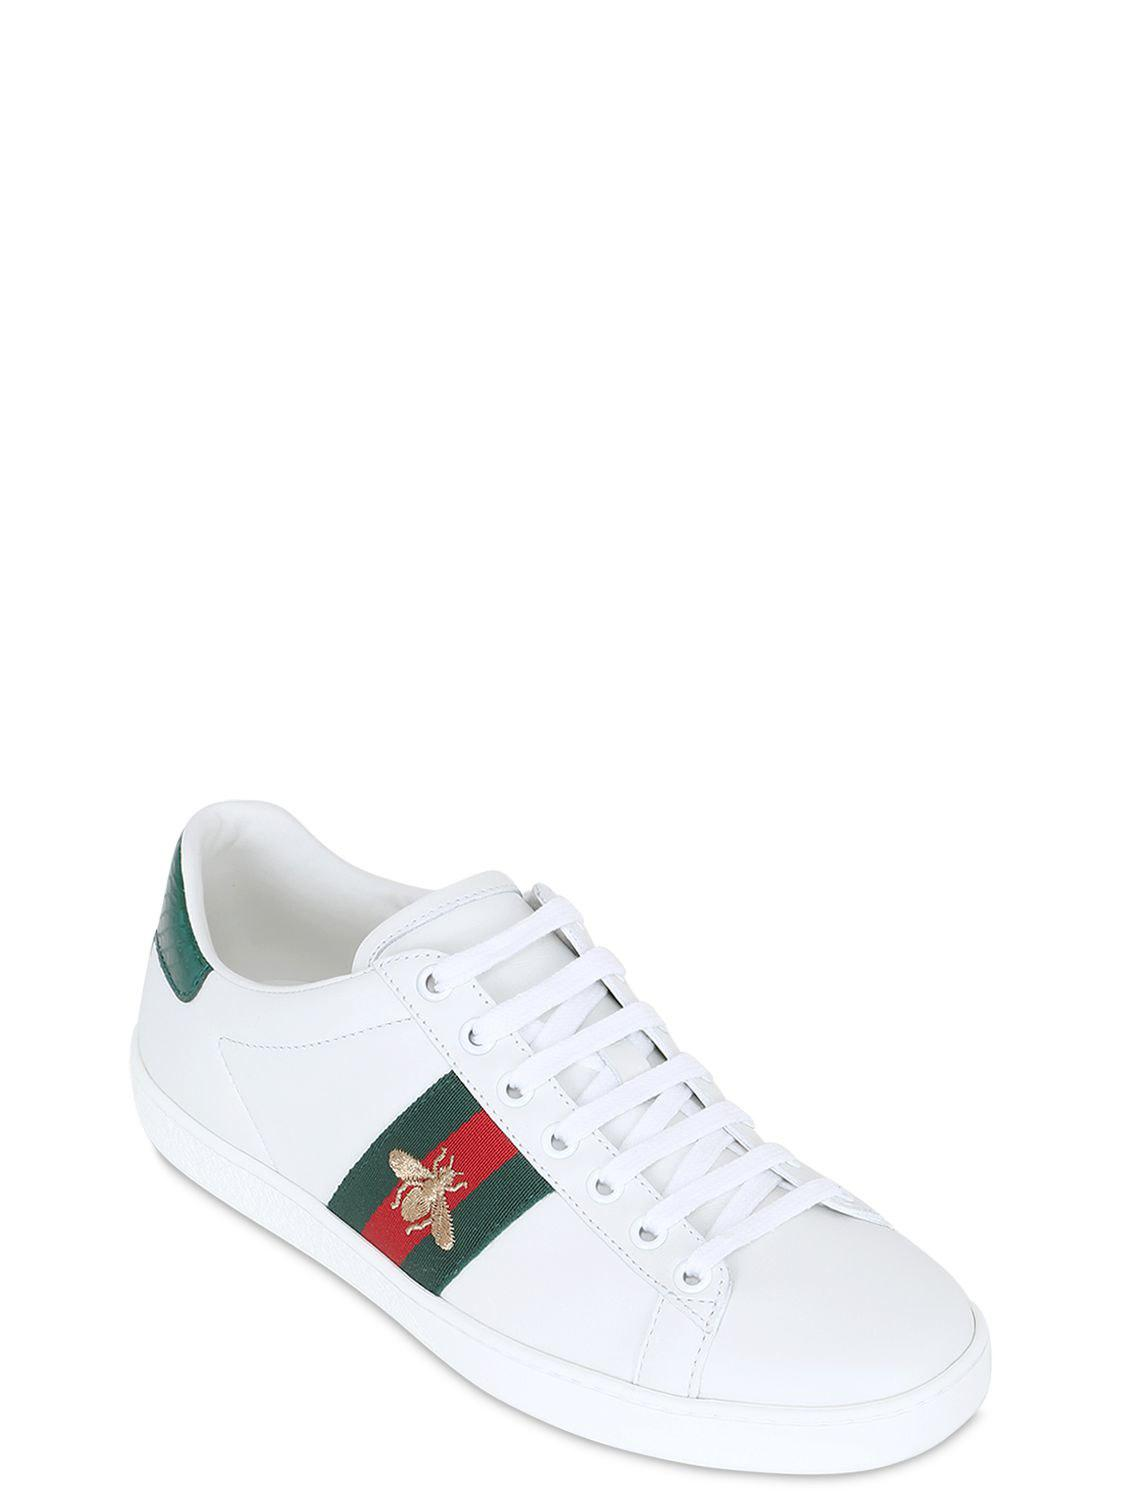 785e1ecd218 Gucci New Ace Embroidered Bee Leather Sneakers in White - Lyst